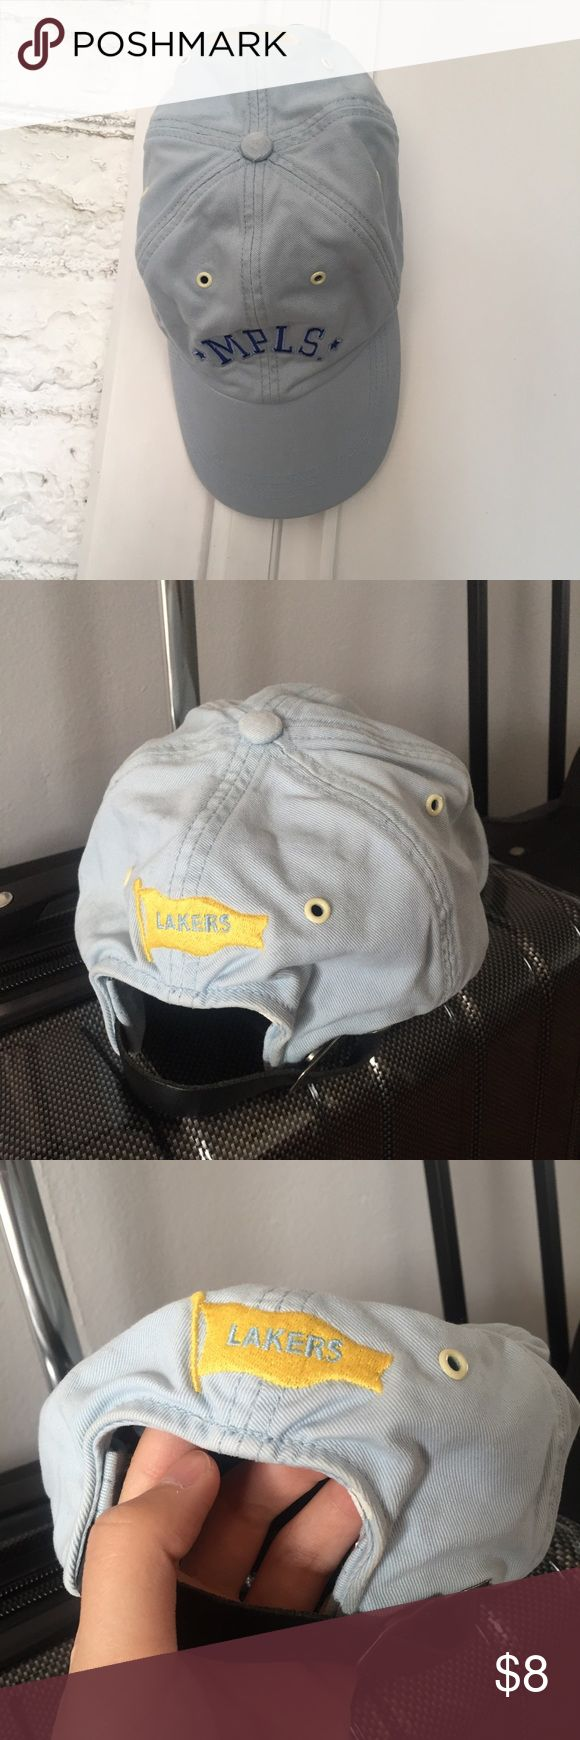 Lakers hat Baby blue Lakers hat with adjustable strap. Good condition. Only minor flaws is the white stain near the strap on the back. Almost unnoticeable. Price firm unless bundle with other items. Accessories Hats